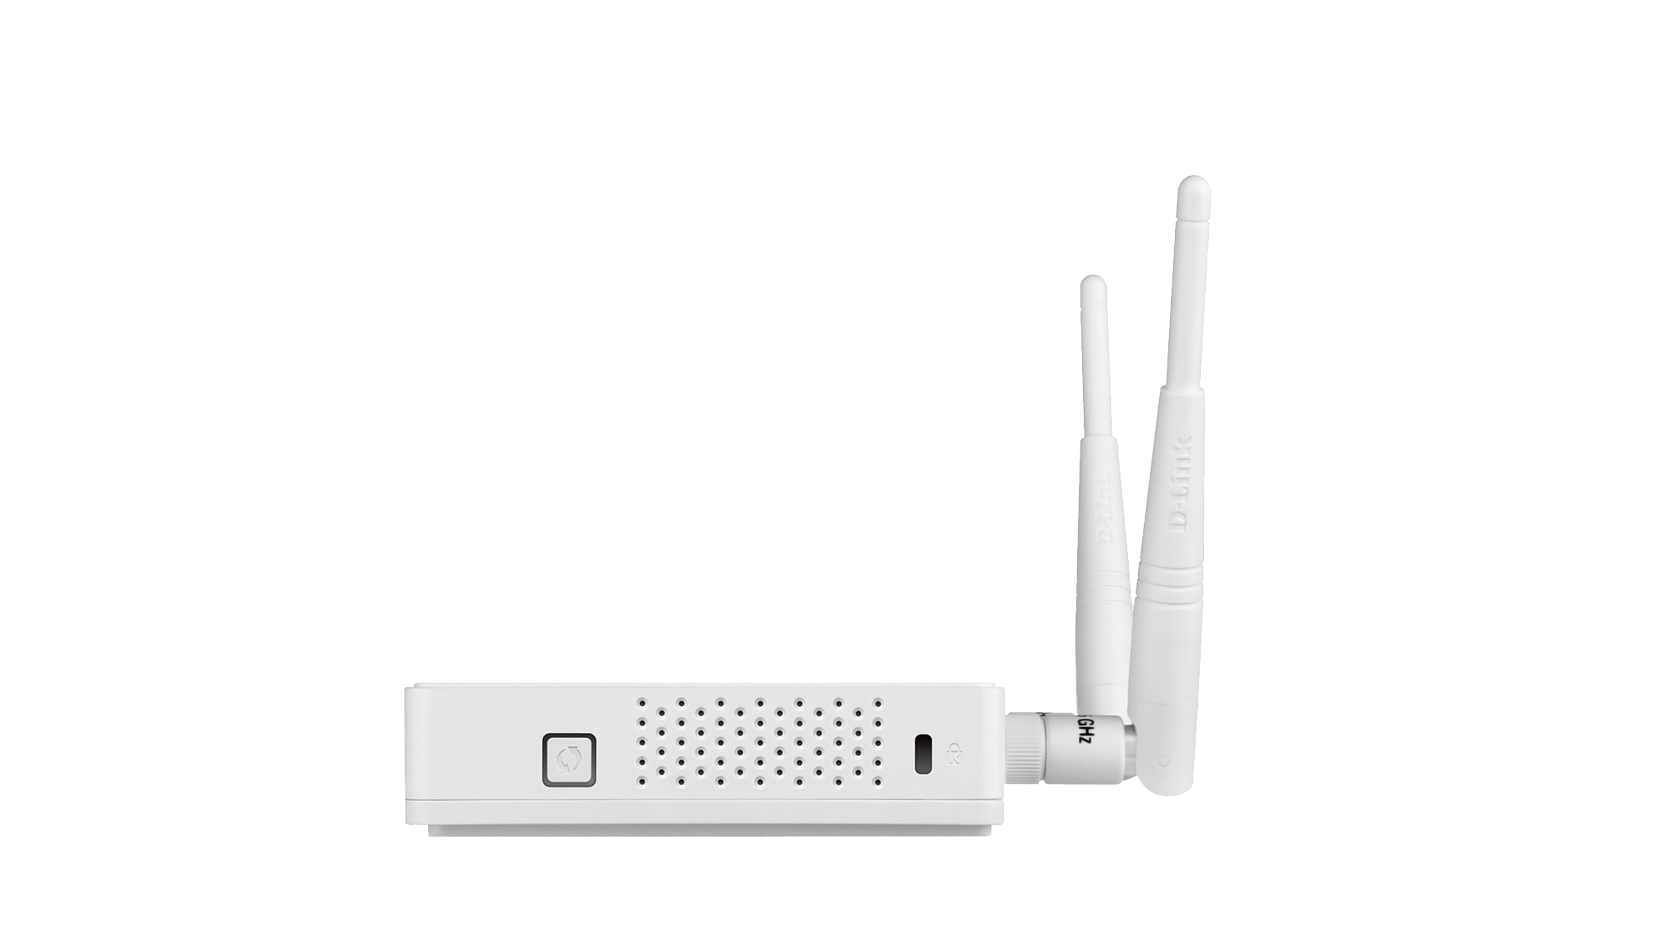 DLink Wireless Access Point DAP-1665